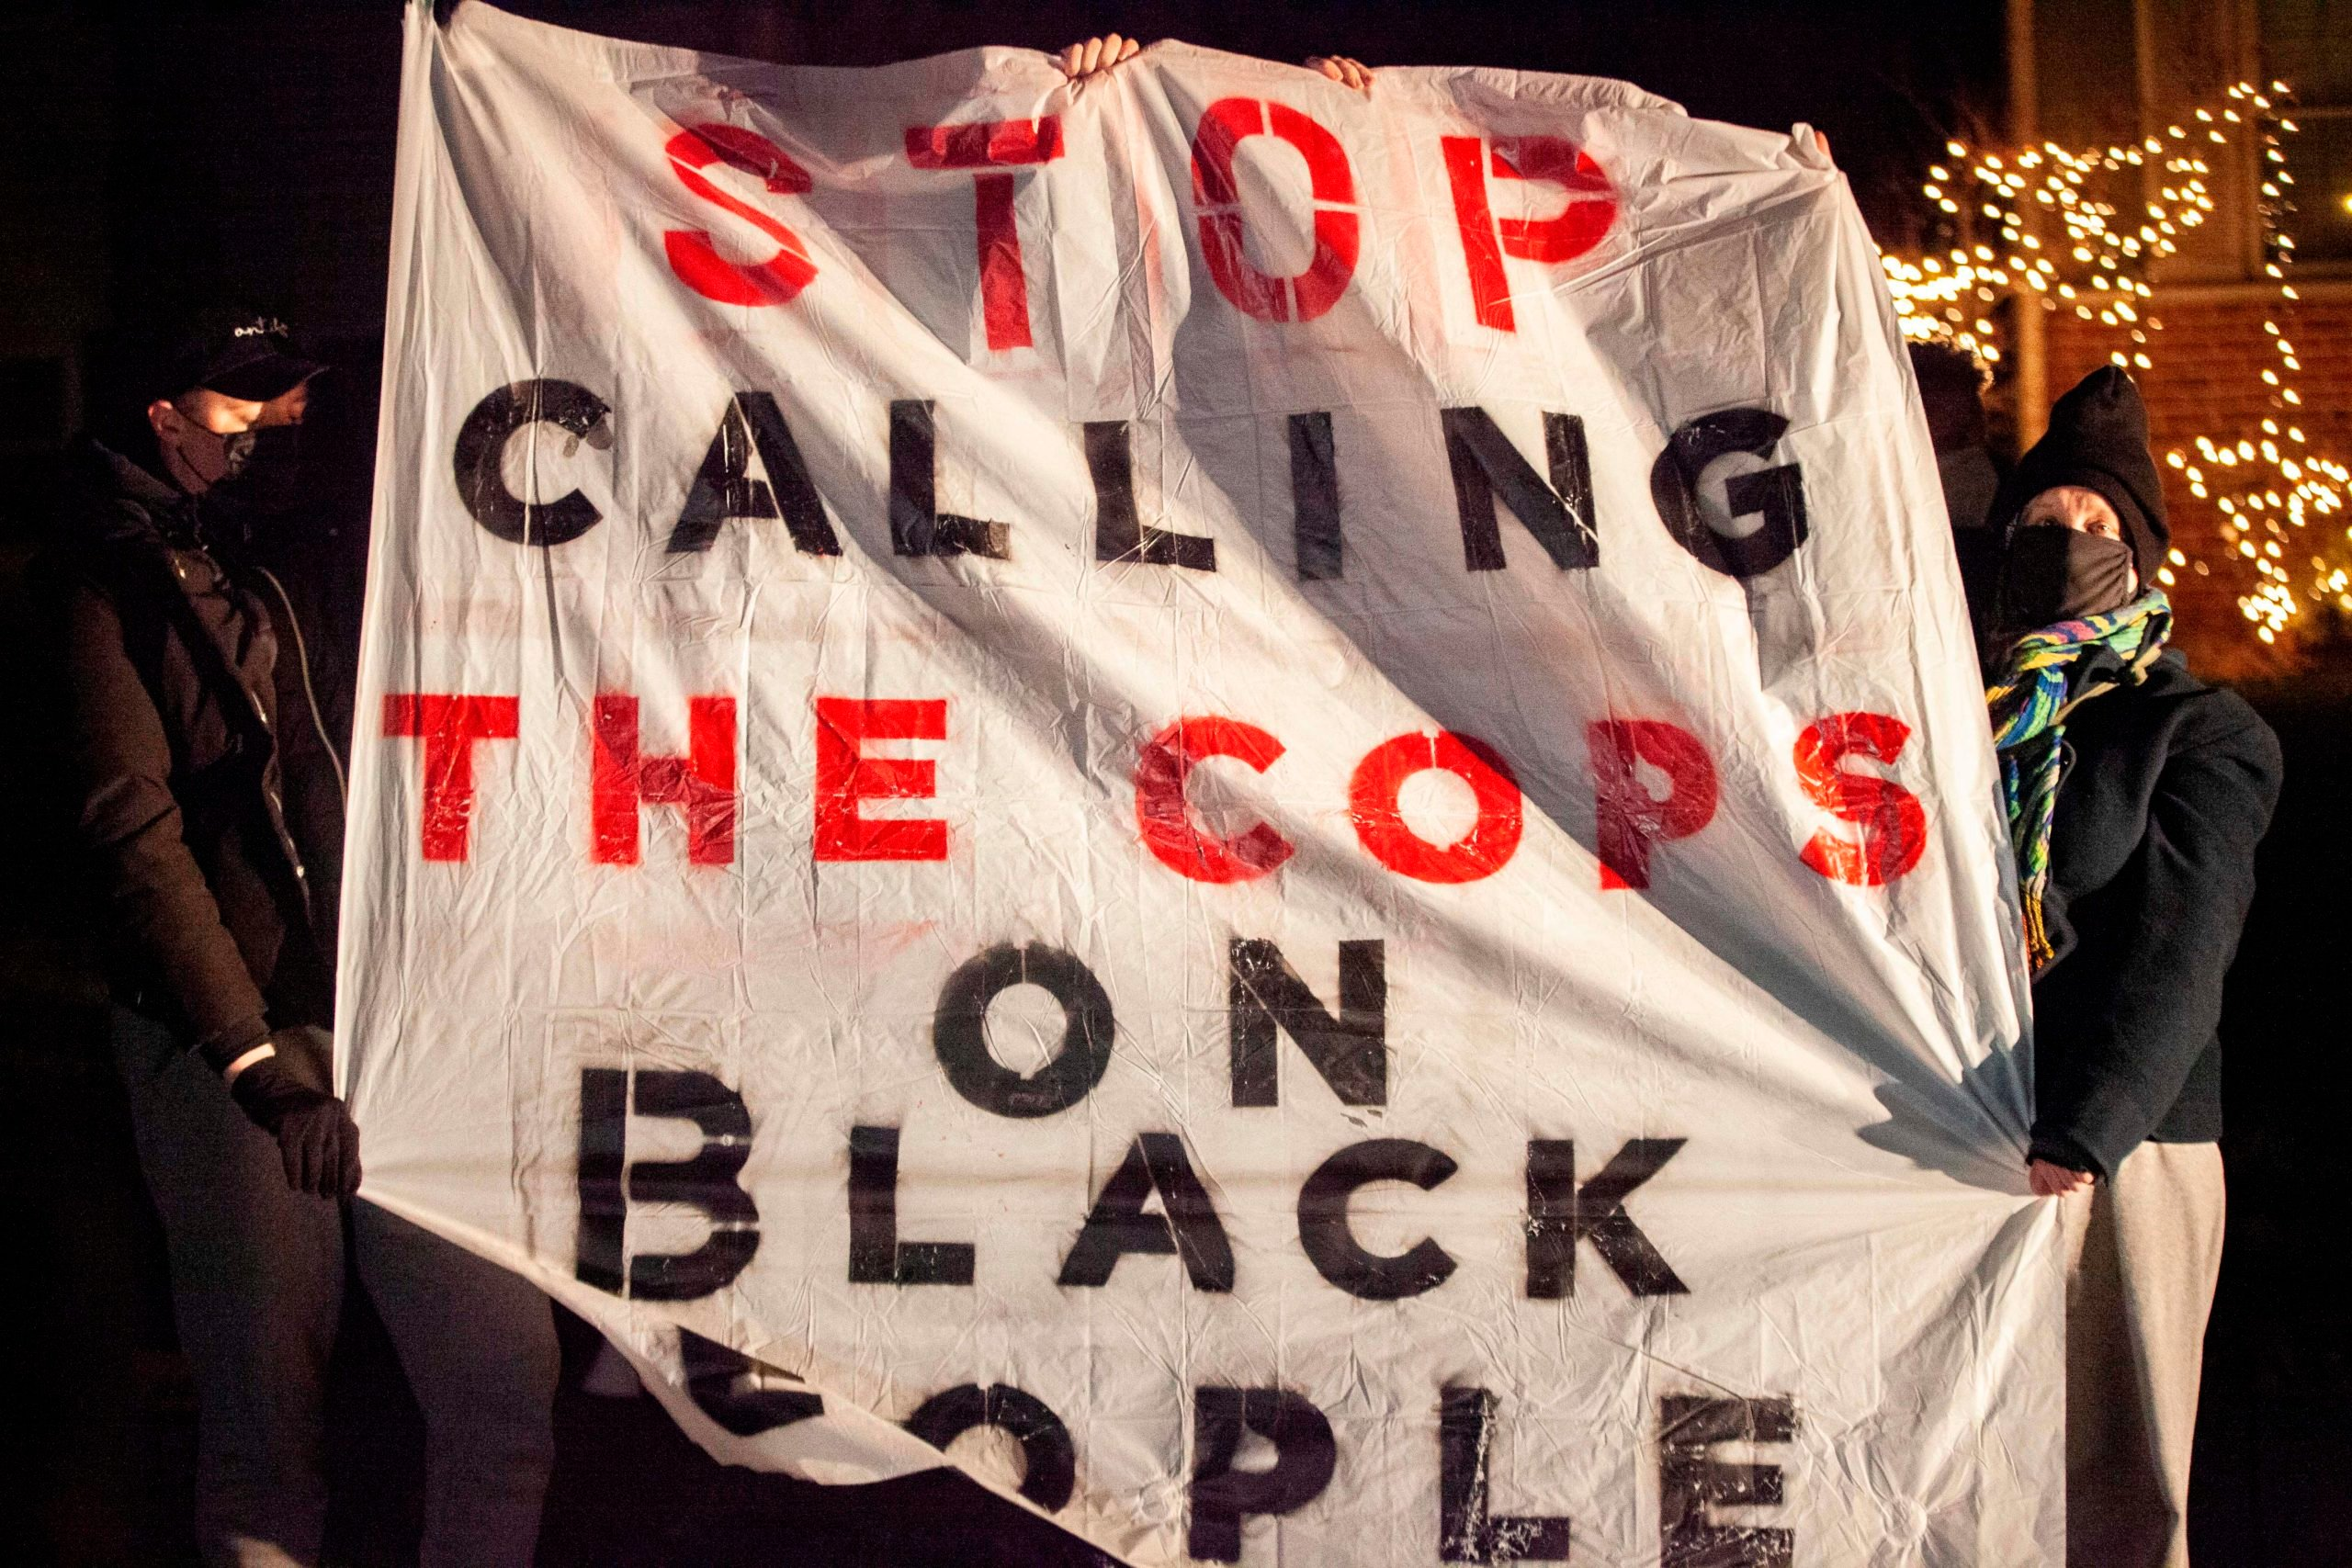 """People hold signs as they participate in a call to action """"White People Stop Calling the Cops on Black People"""" protest. (Photo by STEPHEN ZENNER / AFP) (Photo by STEPHEN ZENNER/AFP via Getty Images)"""